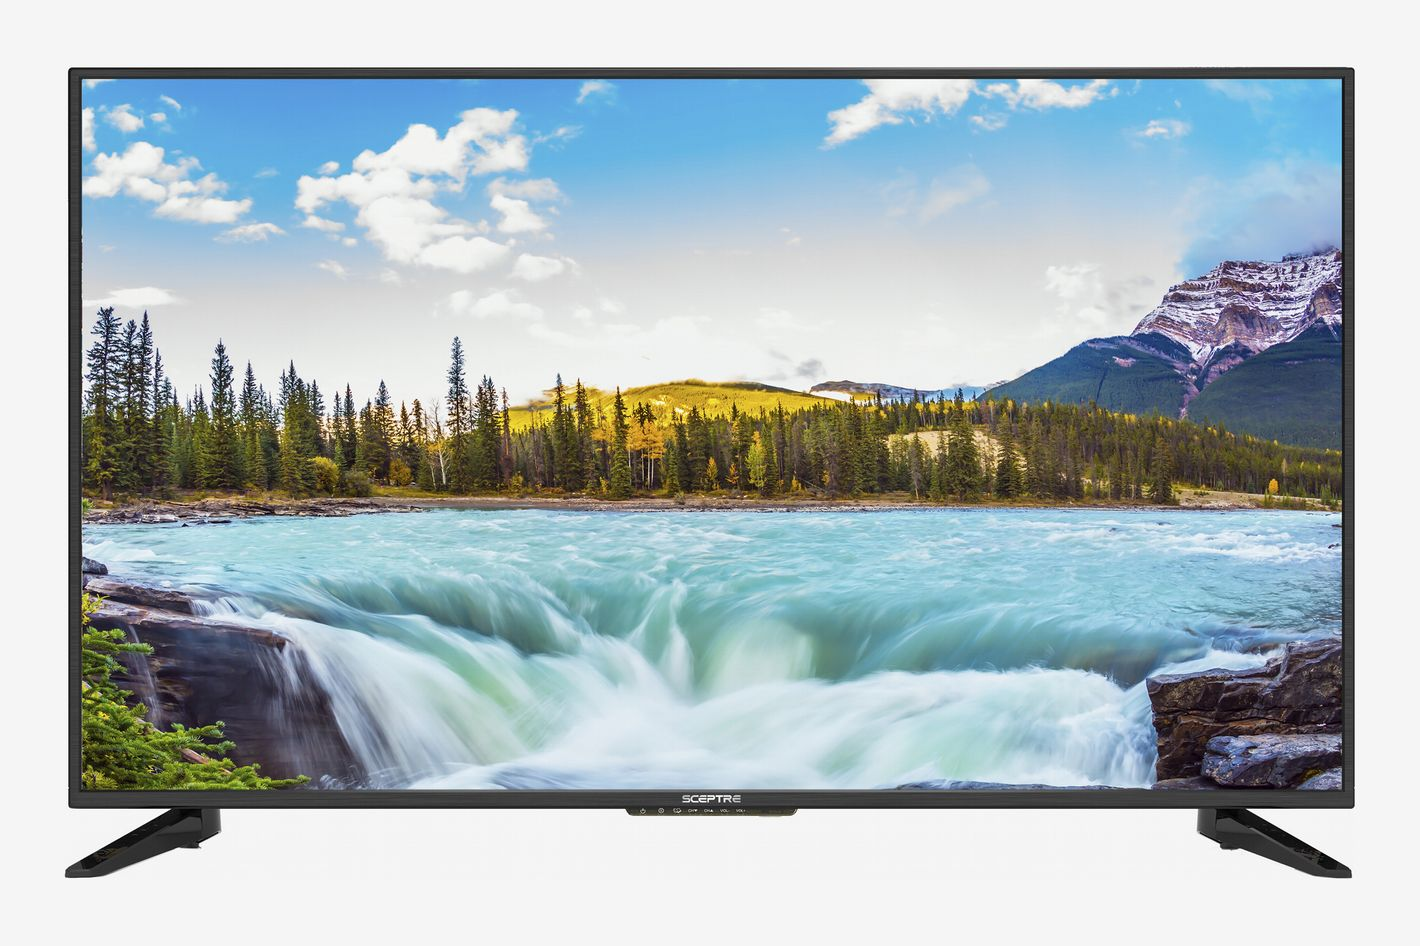 Sceptre 32-Inch Class HD (720P) LED TV (X322BV-SR)